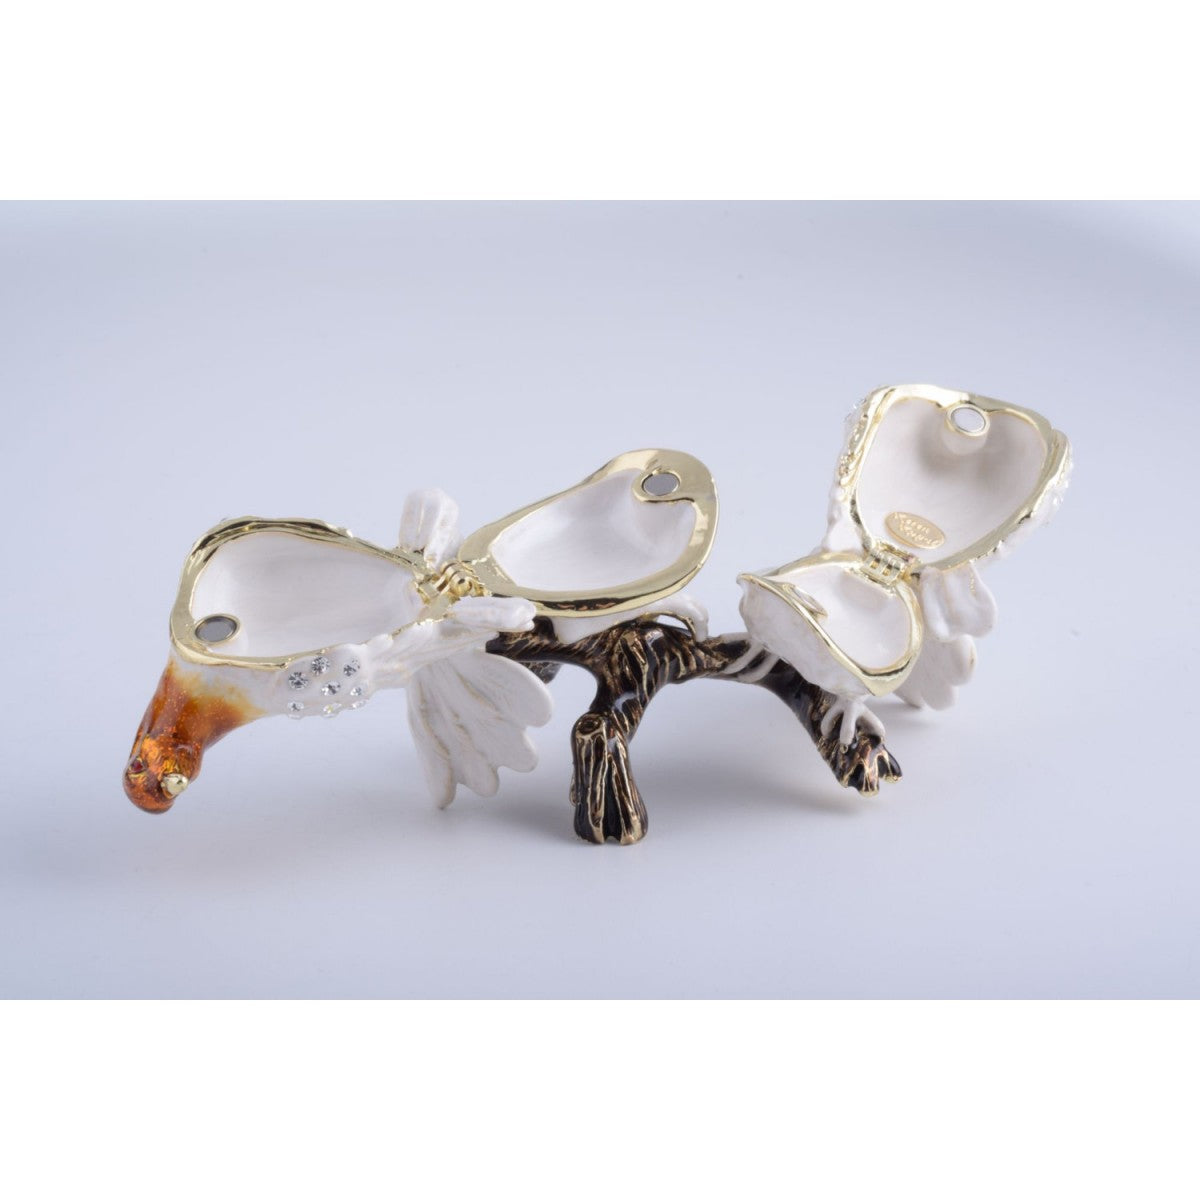 White Birds on a Branch Faberge Style Trinket Box